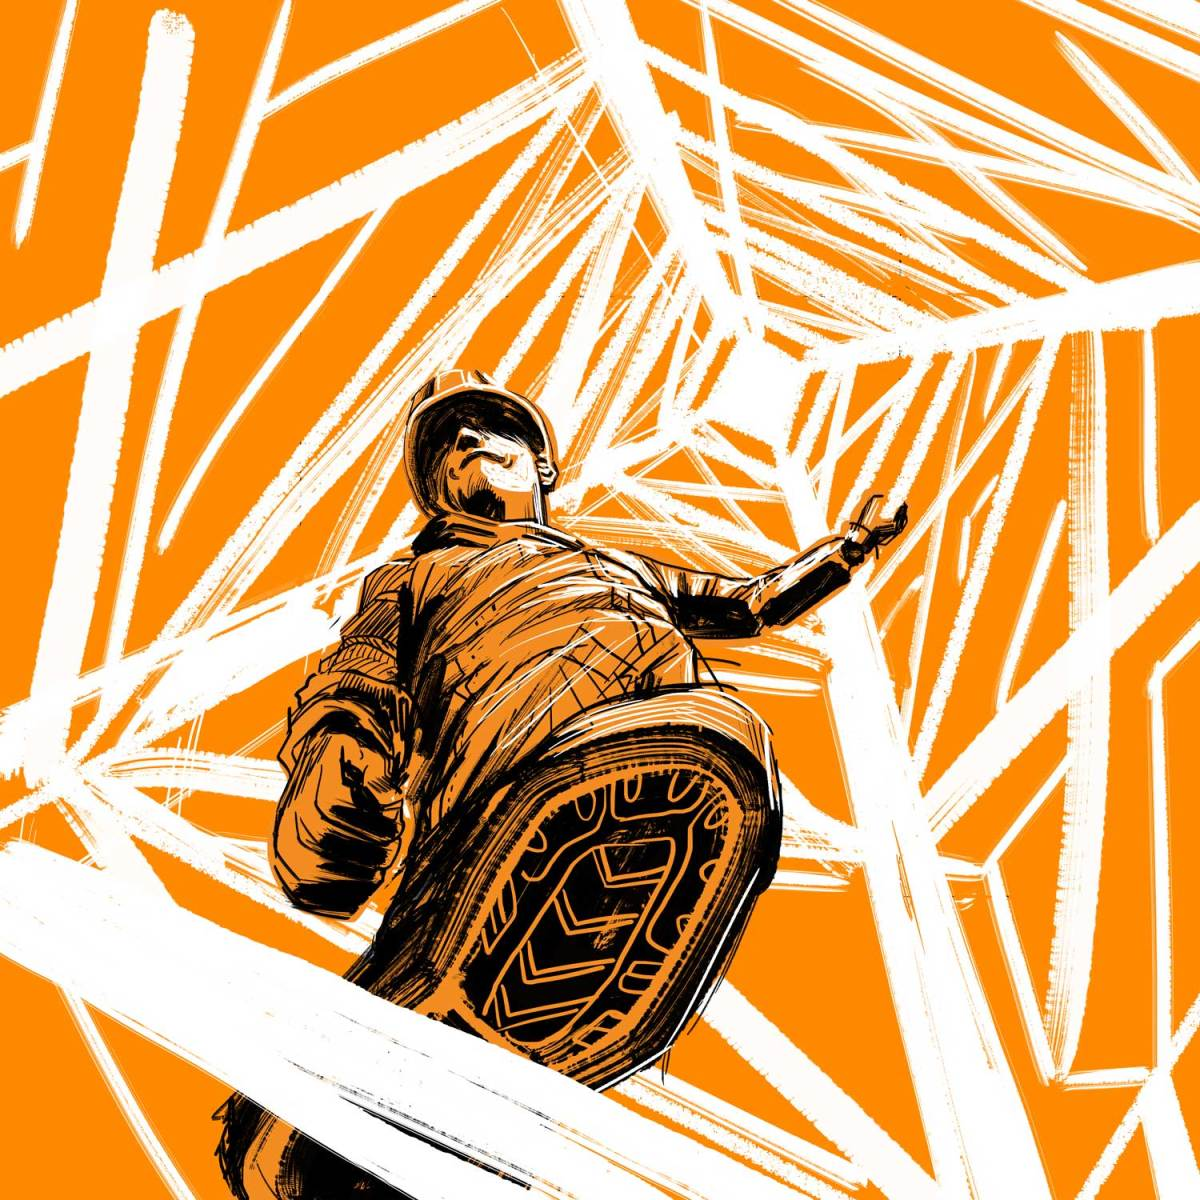 An illustration shows a worker standing on an abstract tower, wearing a helmet and uniform, against an orange background.